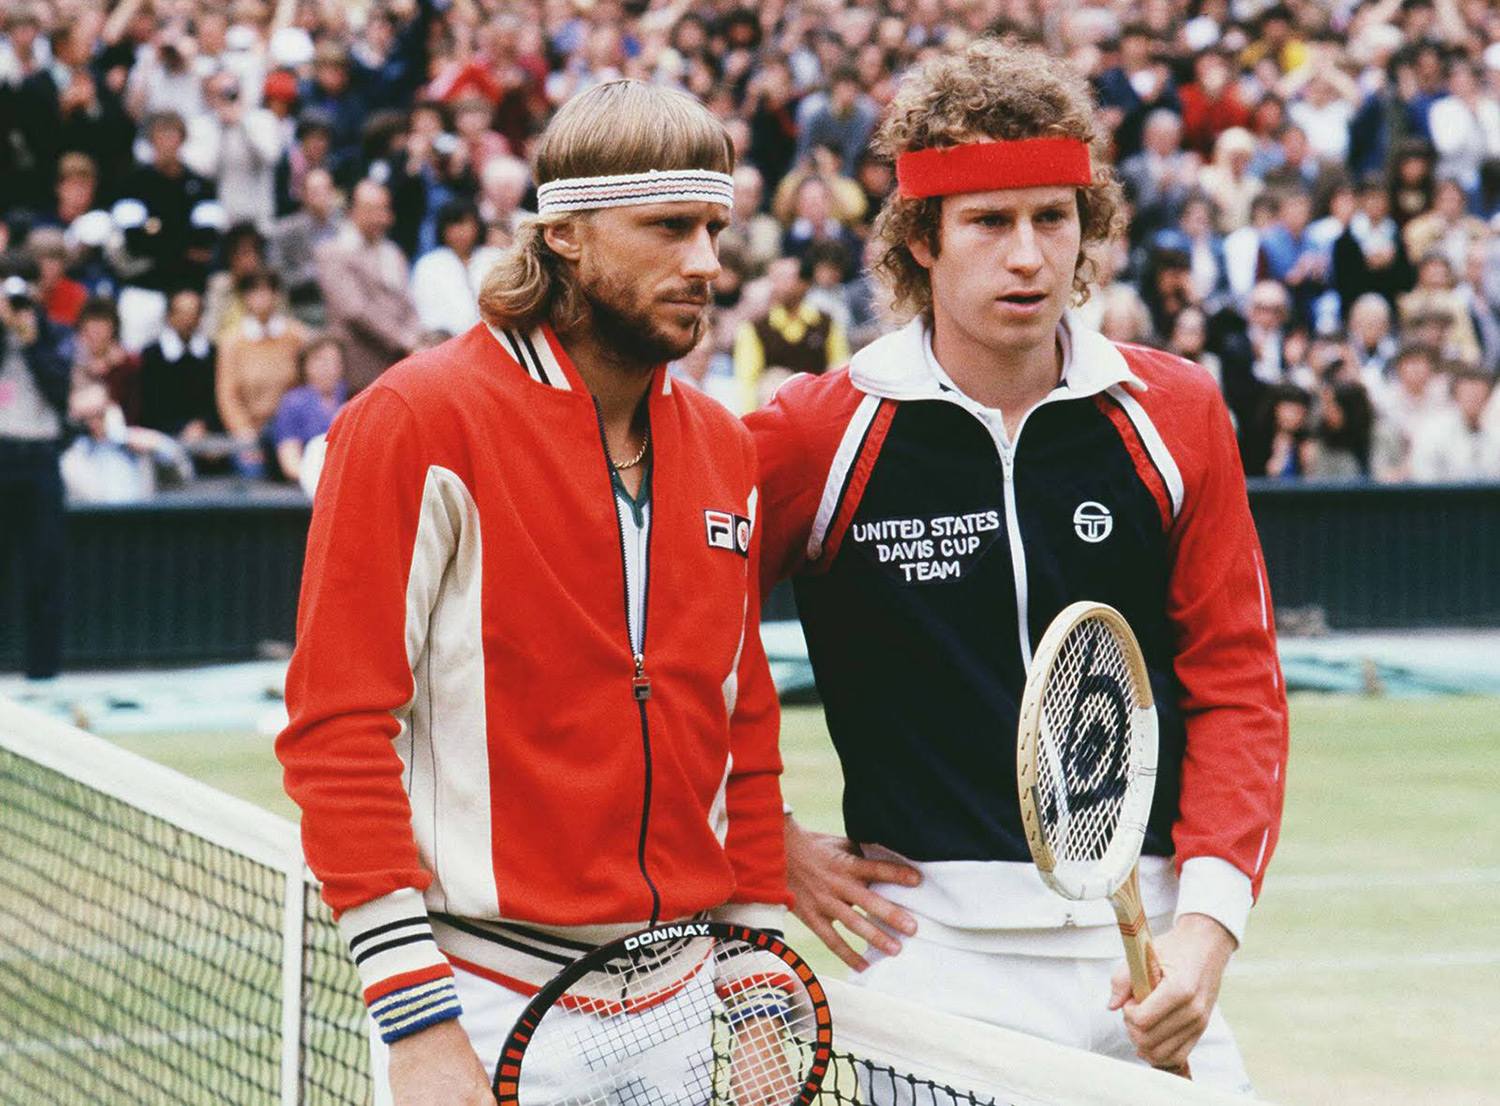 Rivals Bjorn Borg and John McEnroe making small talk before their match at Wimbledon in 1980. Well, more McEnroe talking and Borg just...not.